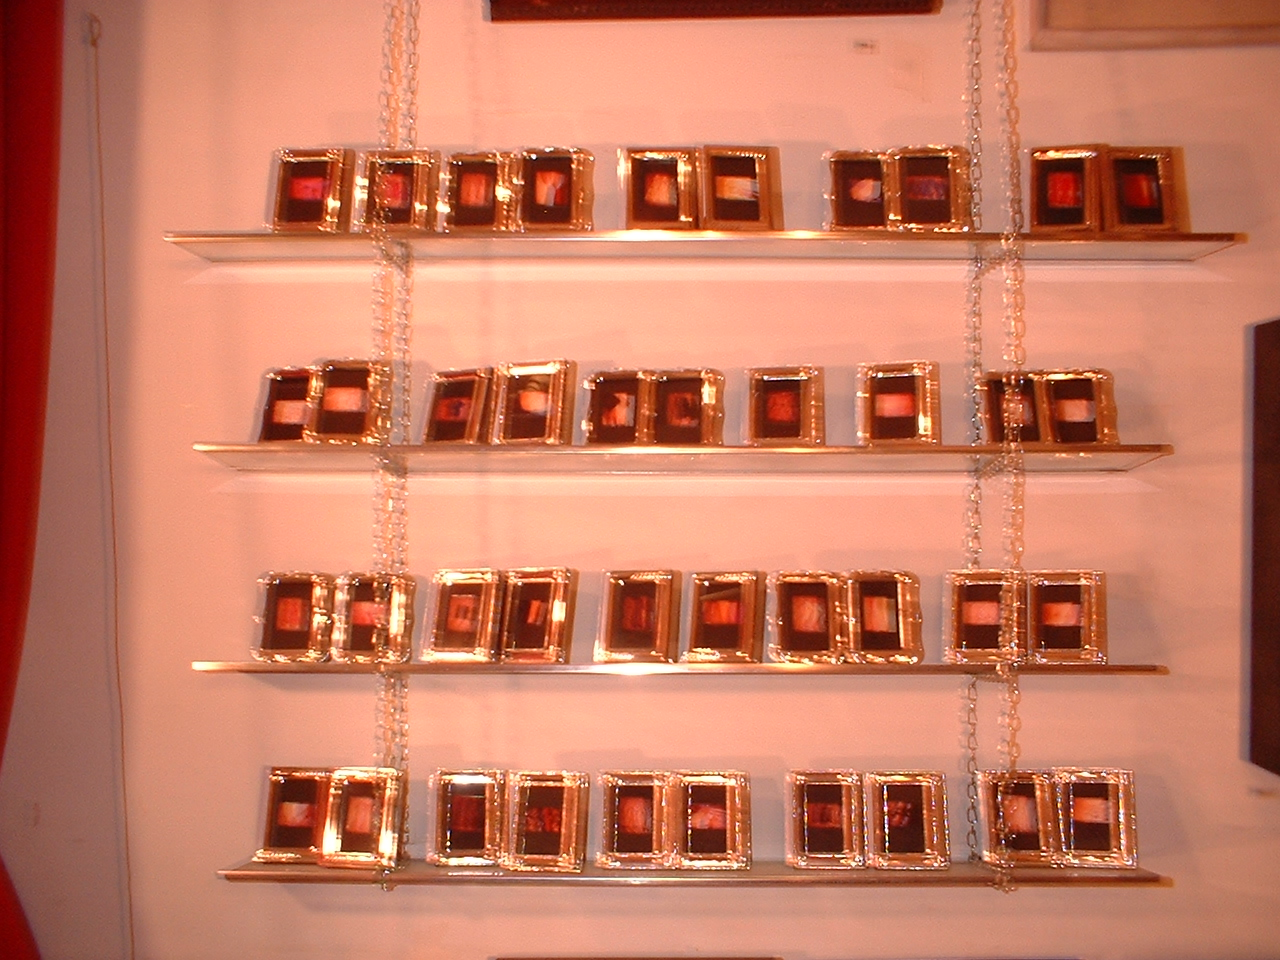 Poetry of cut clothing. 1999; color photographs, metal frames w/ glass, glass & metal shelves, chain